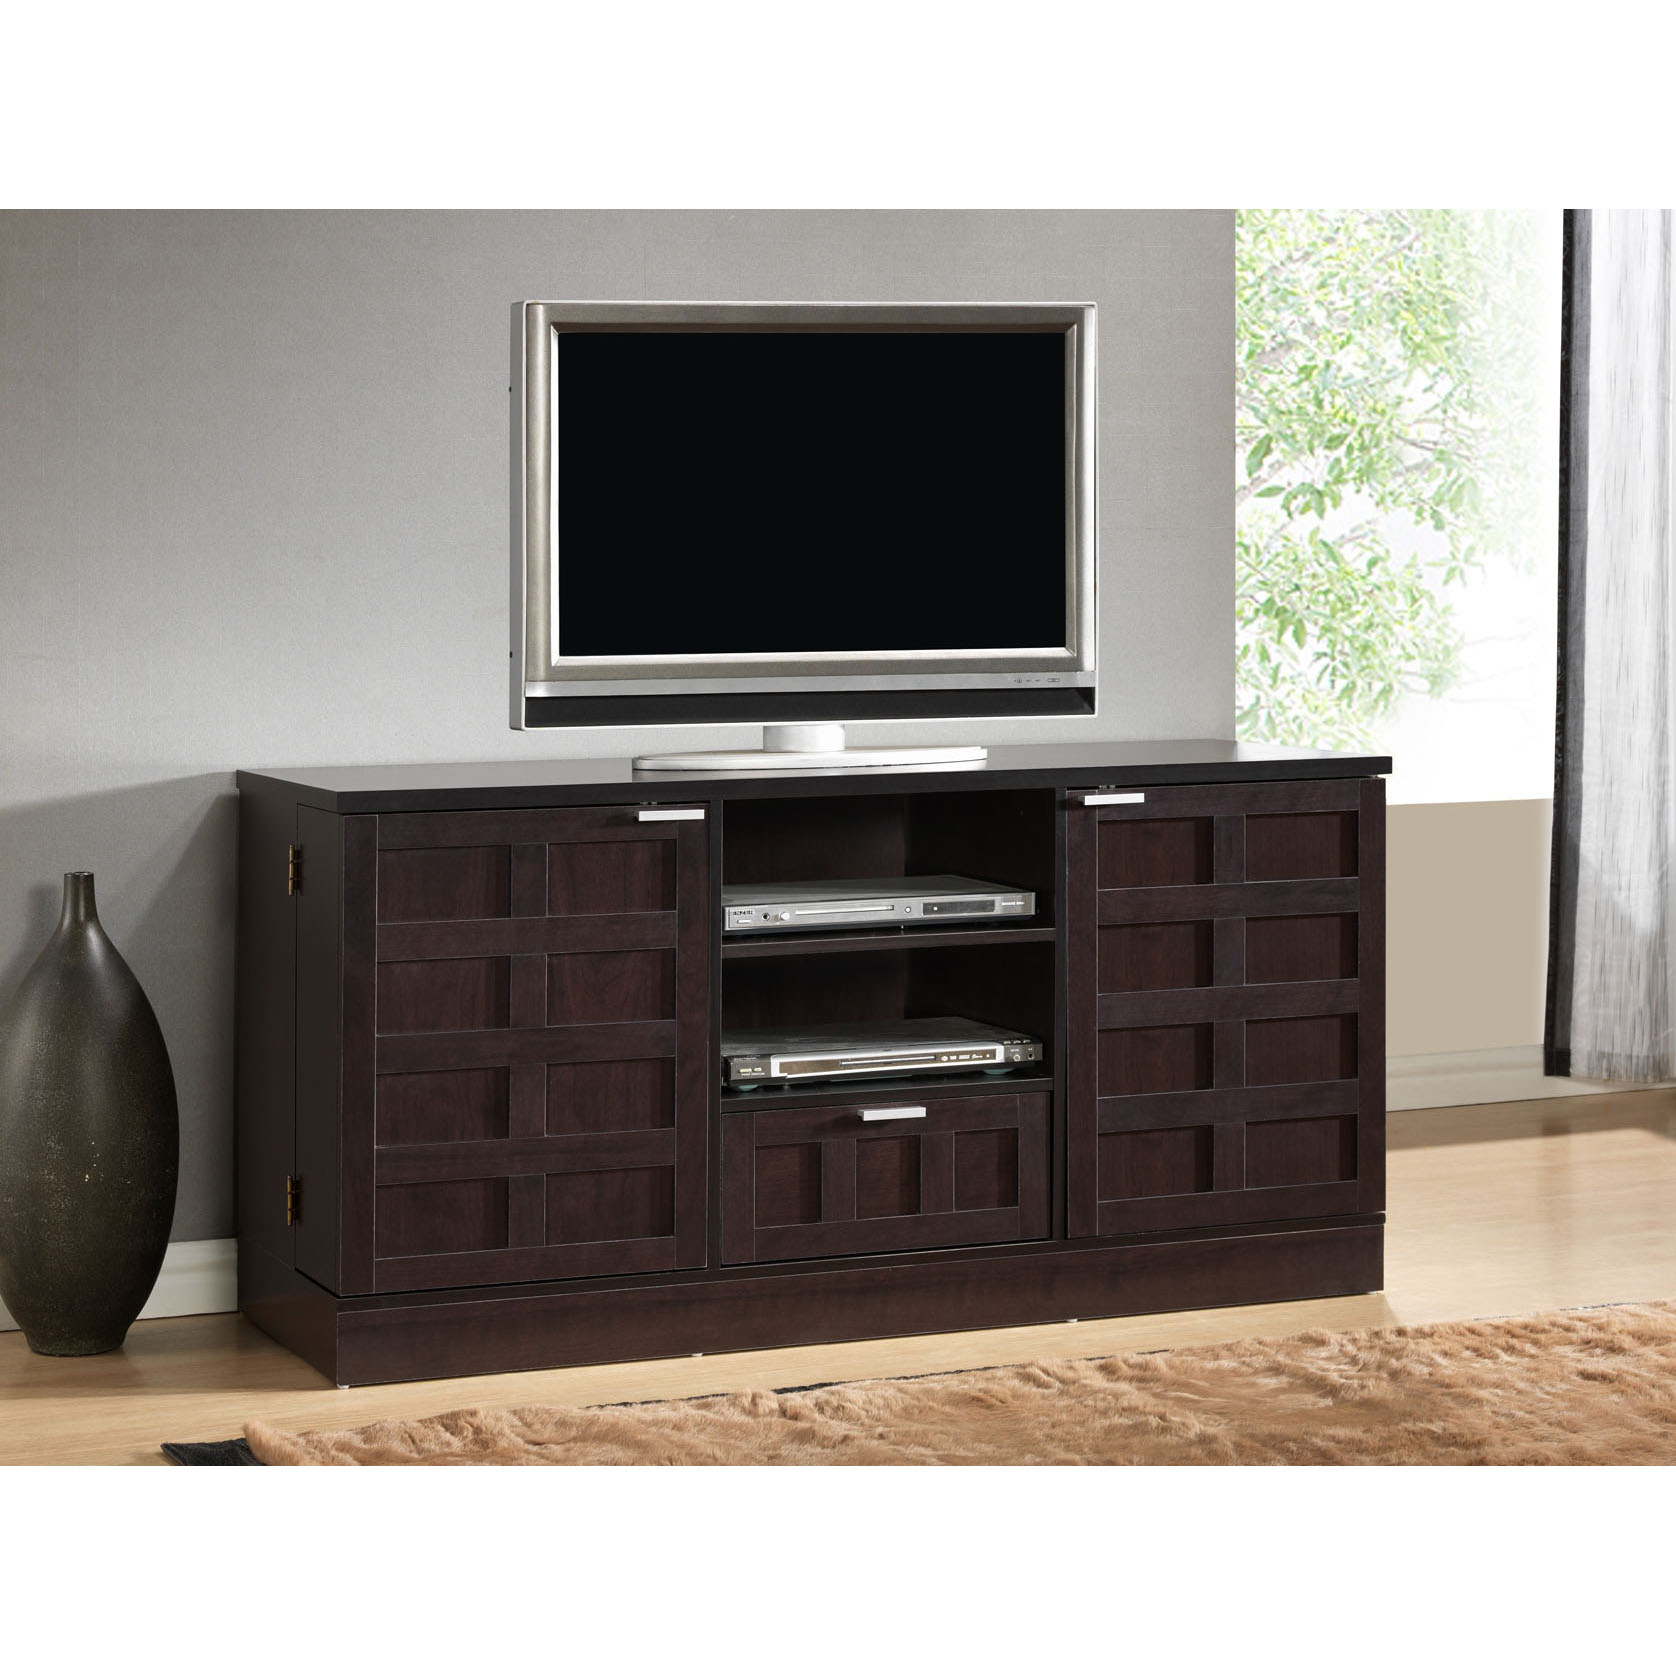 Long Media Cabinet For Your Living Room – Homesfeed Regarding Tv Stands Cabinets (View 5 of 15)